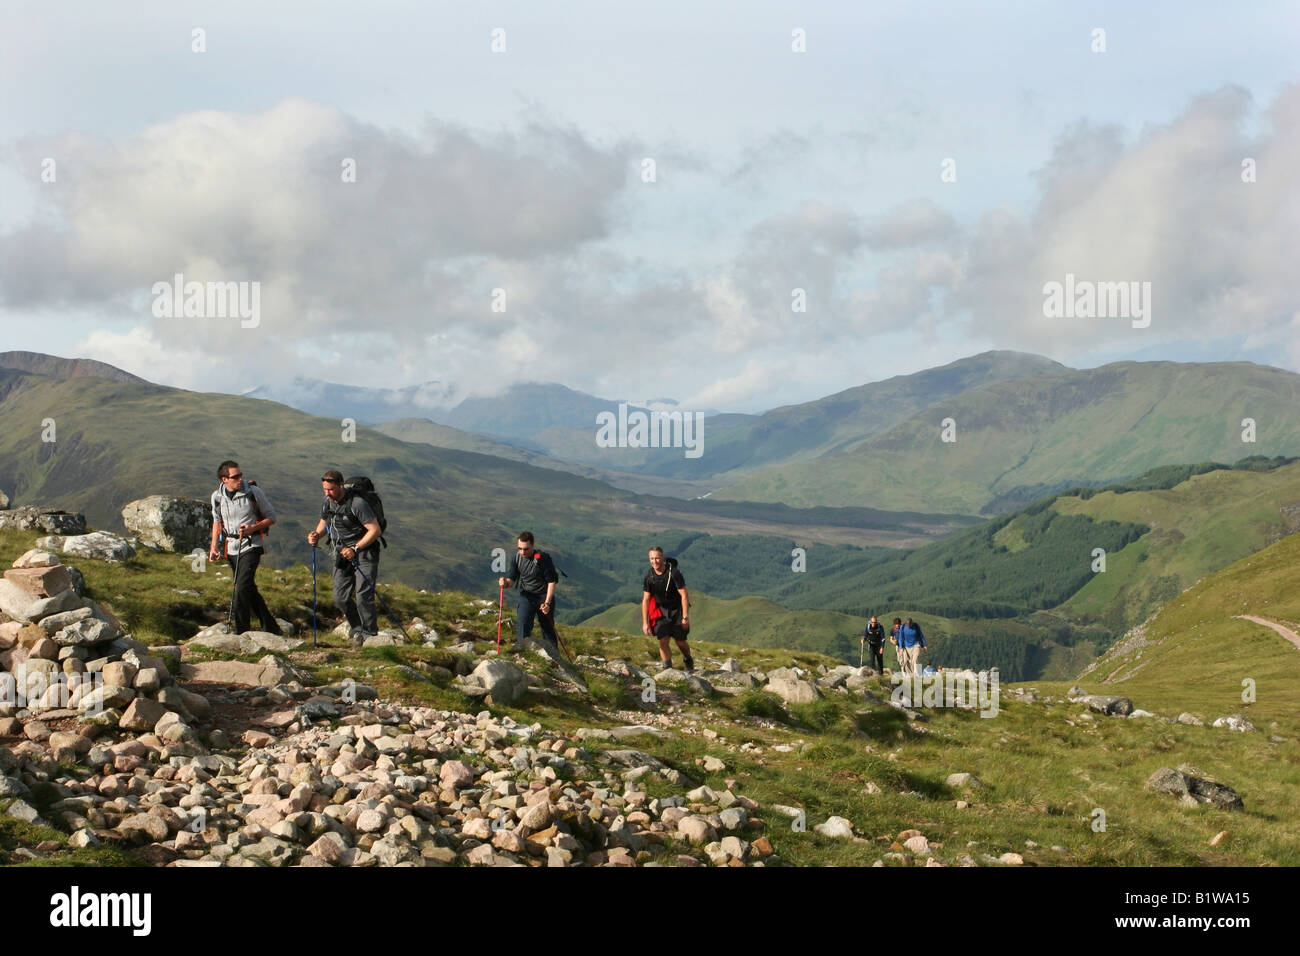 Walkers ascending path to Ben Nevis on The Three Peaks Challange - Stock Image